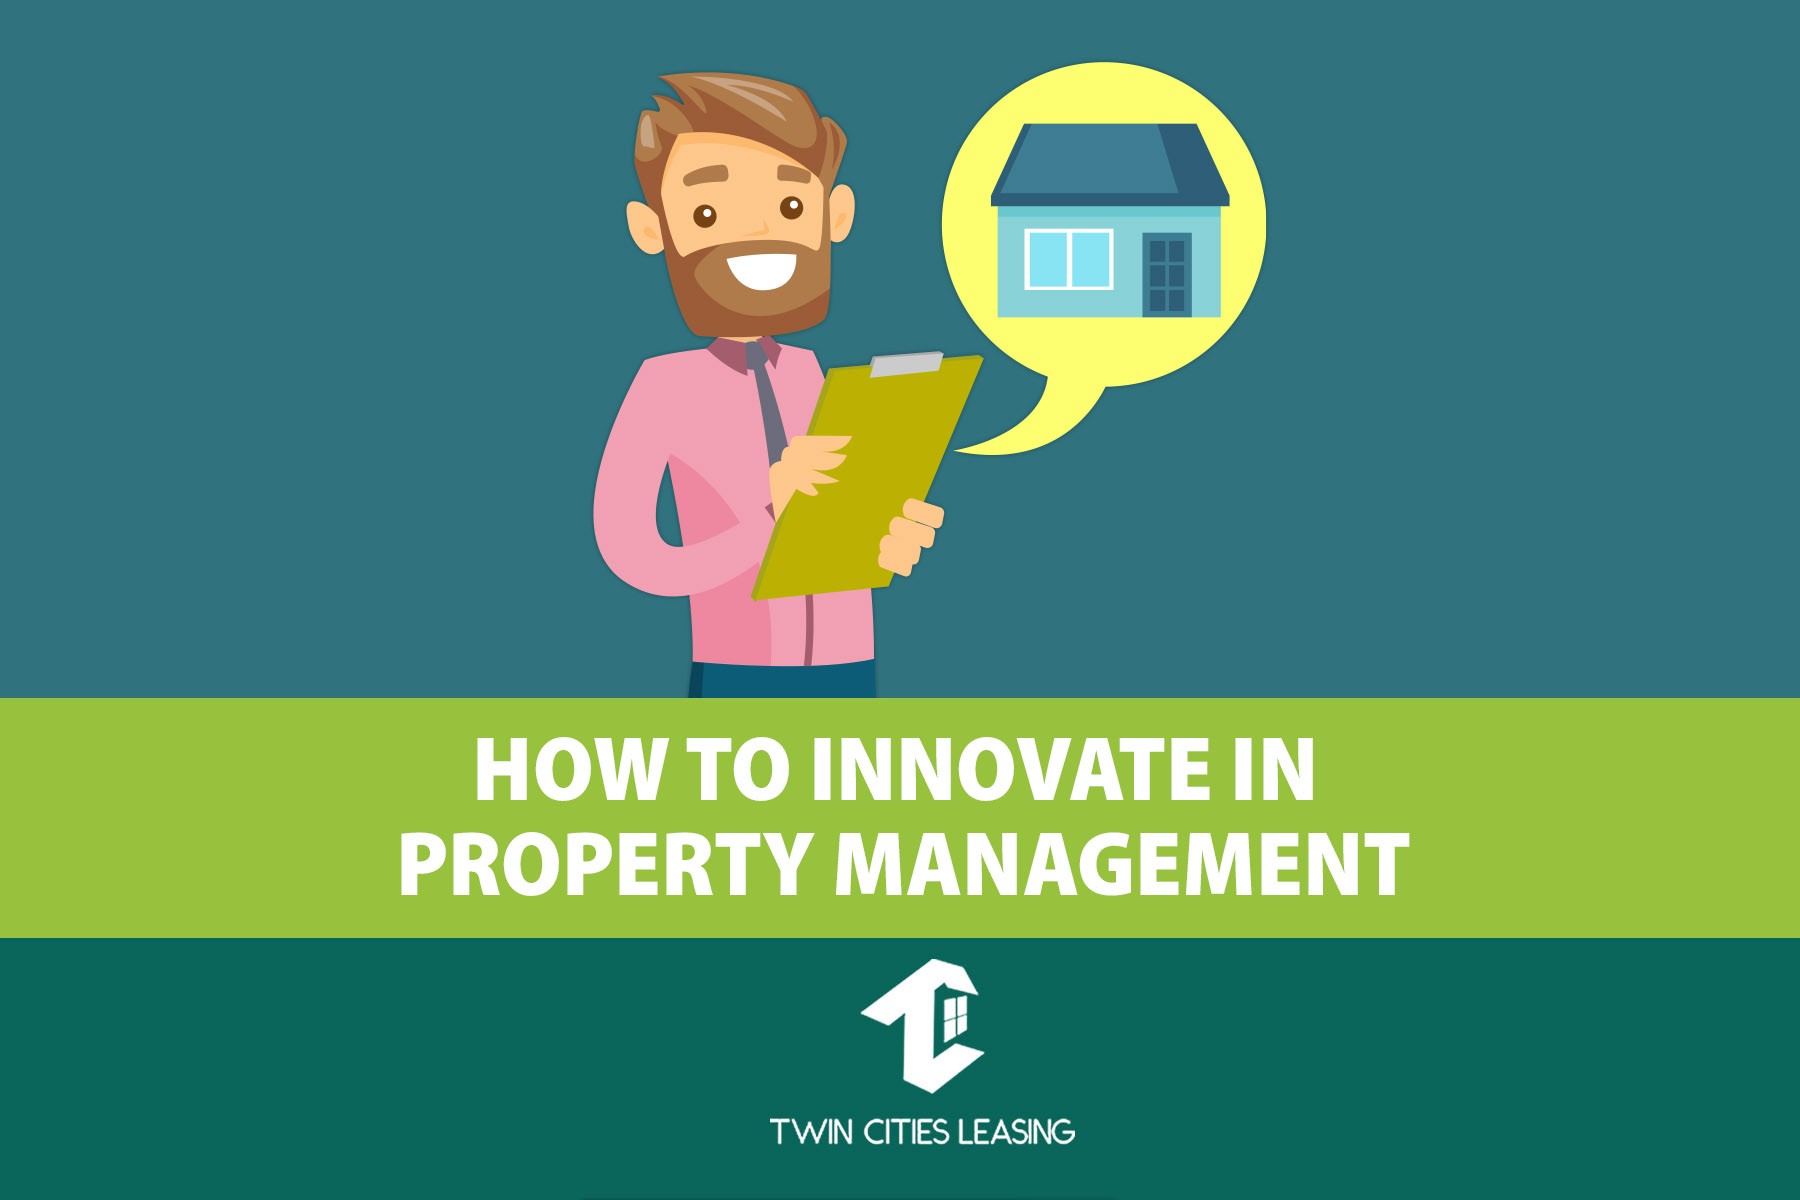 How to Innovate in the Property Management Industry